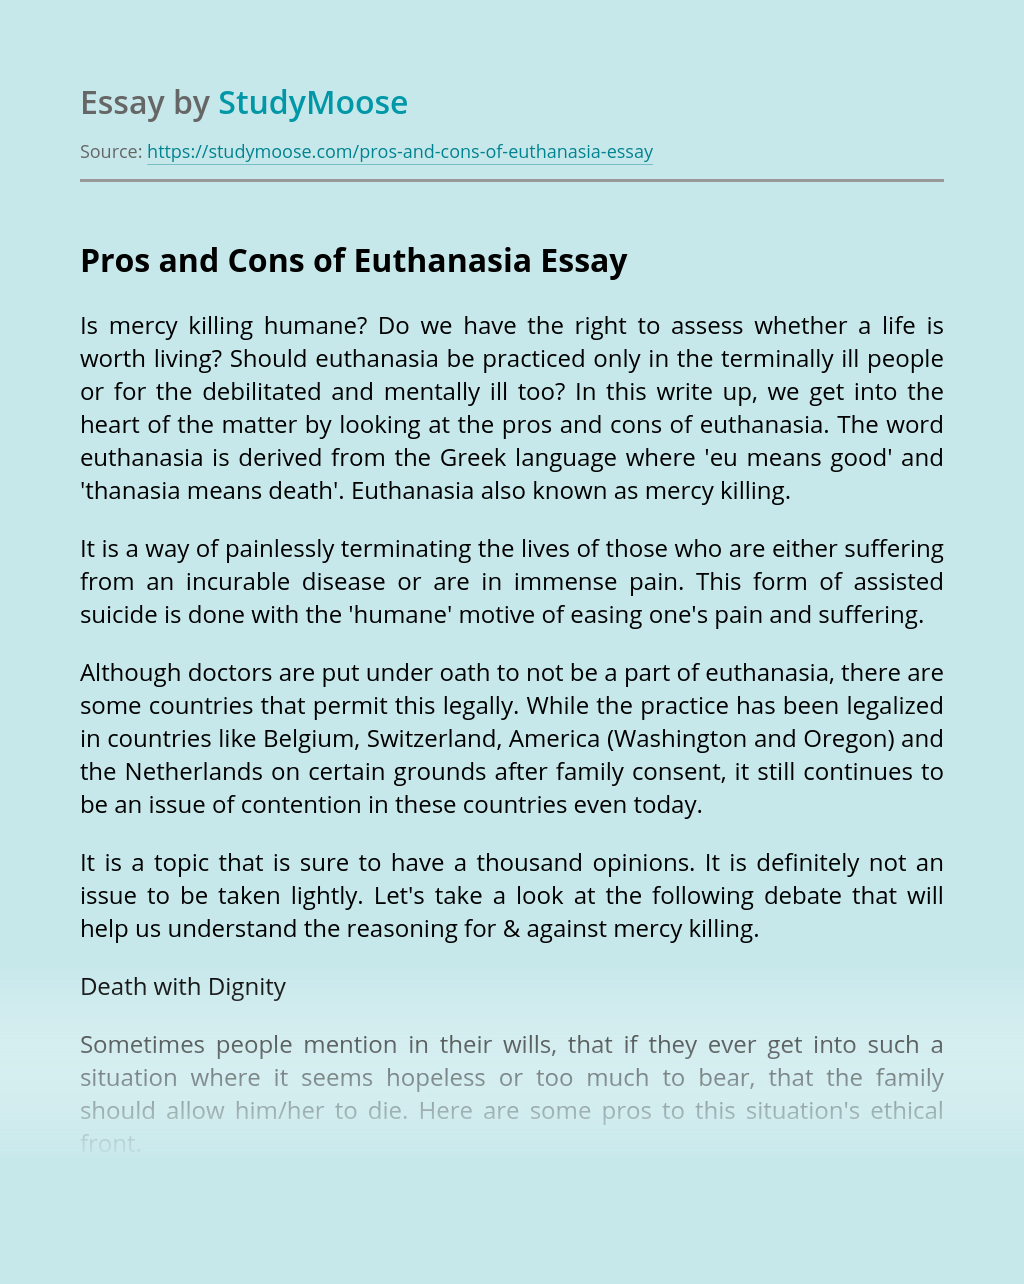 Pros and Cons of Euthanasia